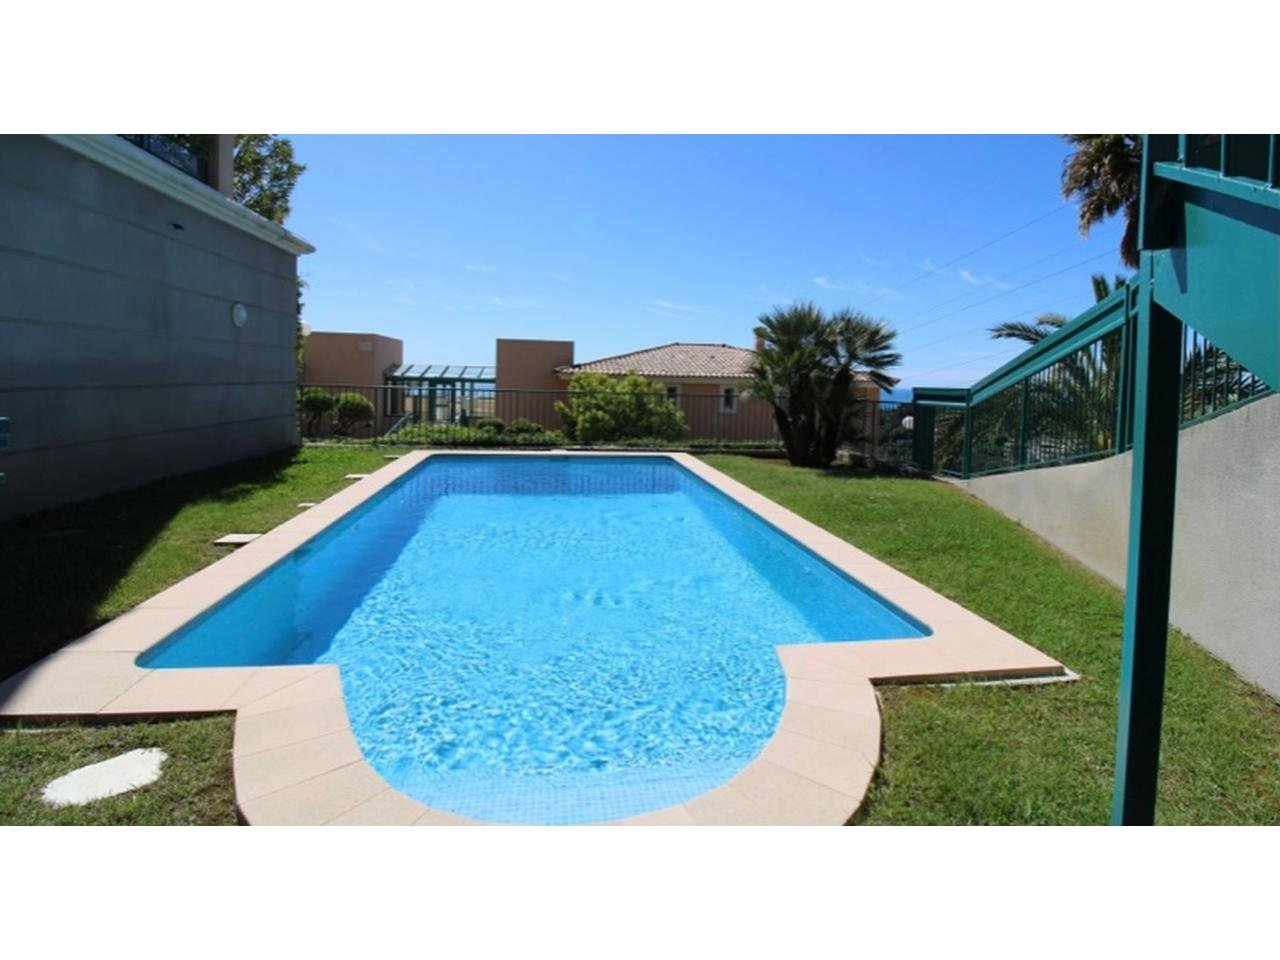 Appartement  3 Rooms 77.7m2  for sale   590000 €